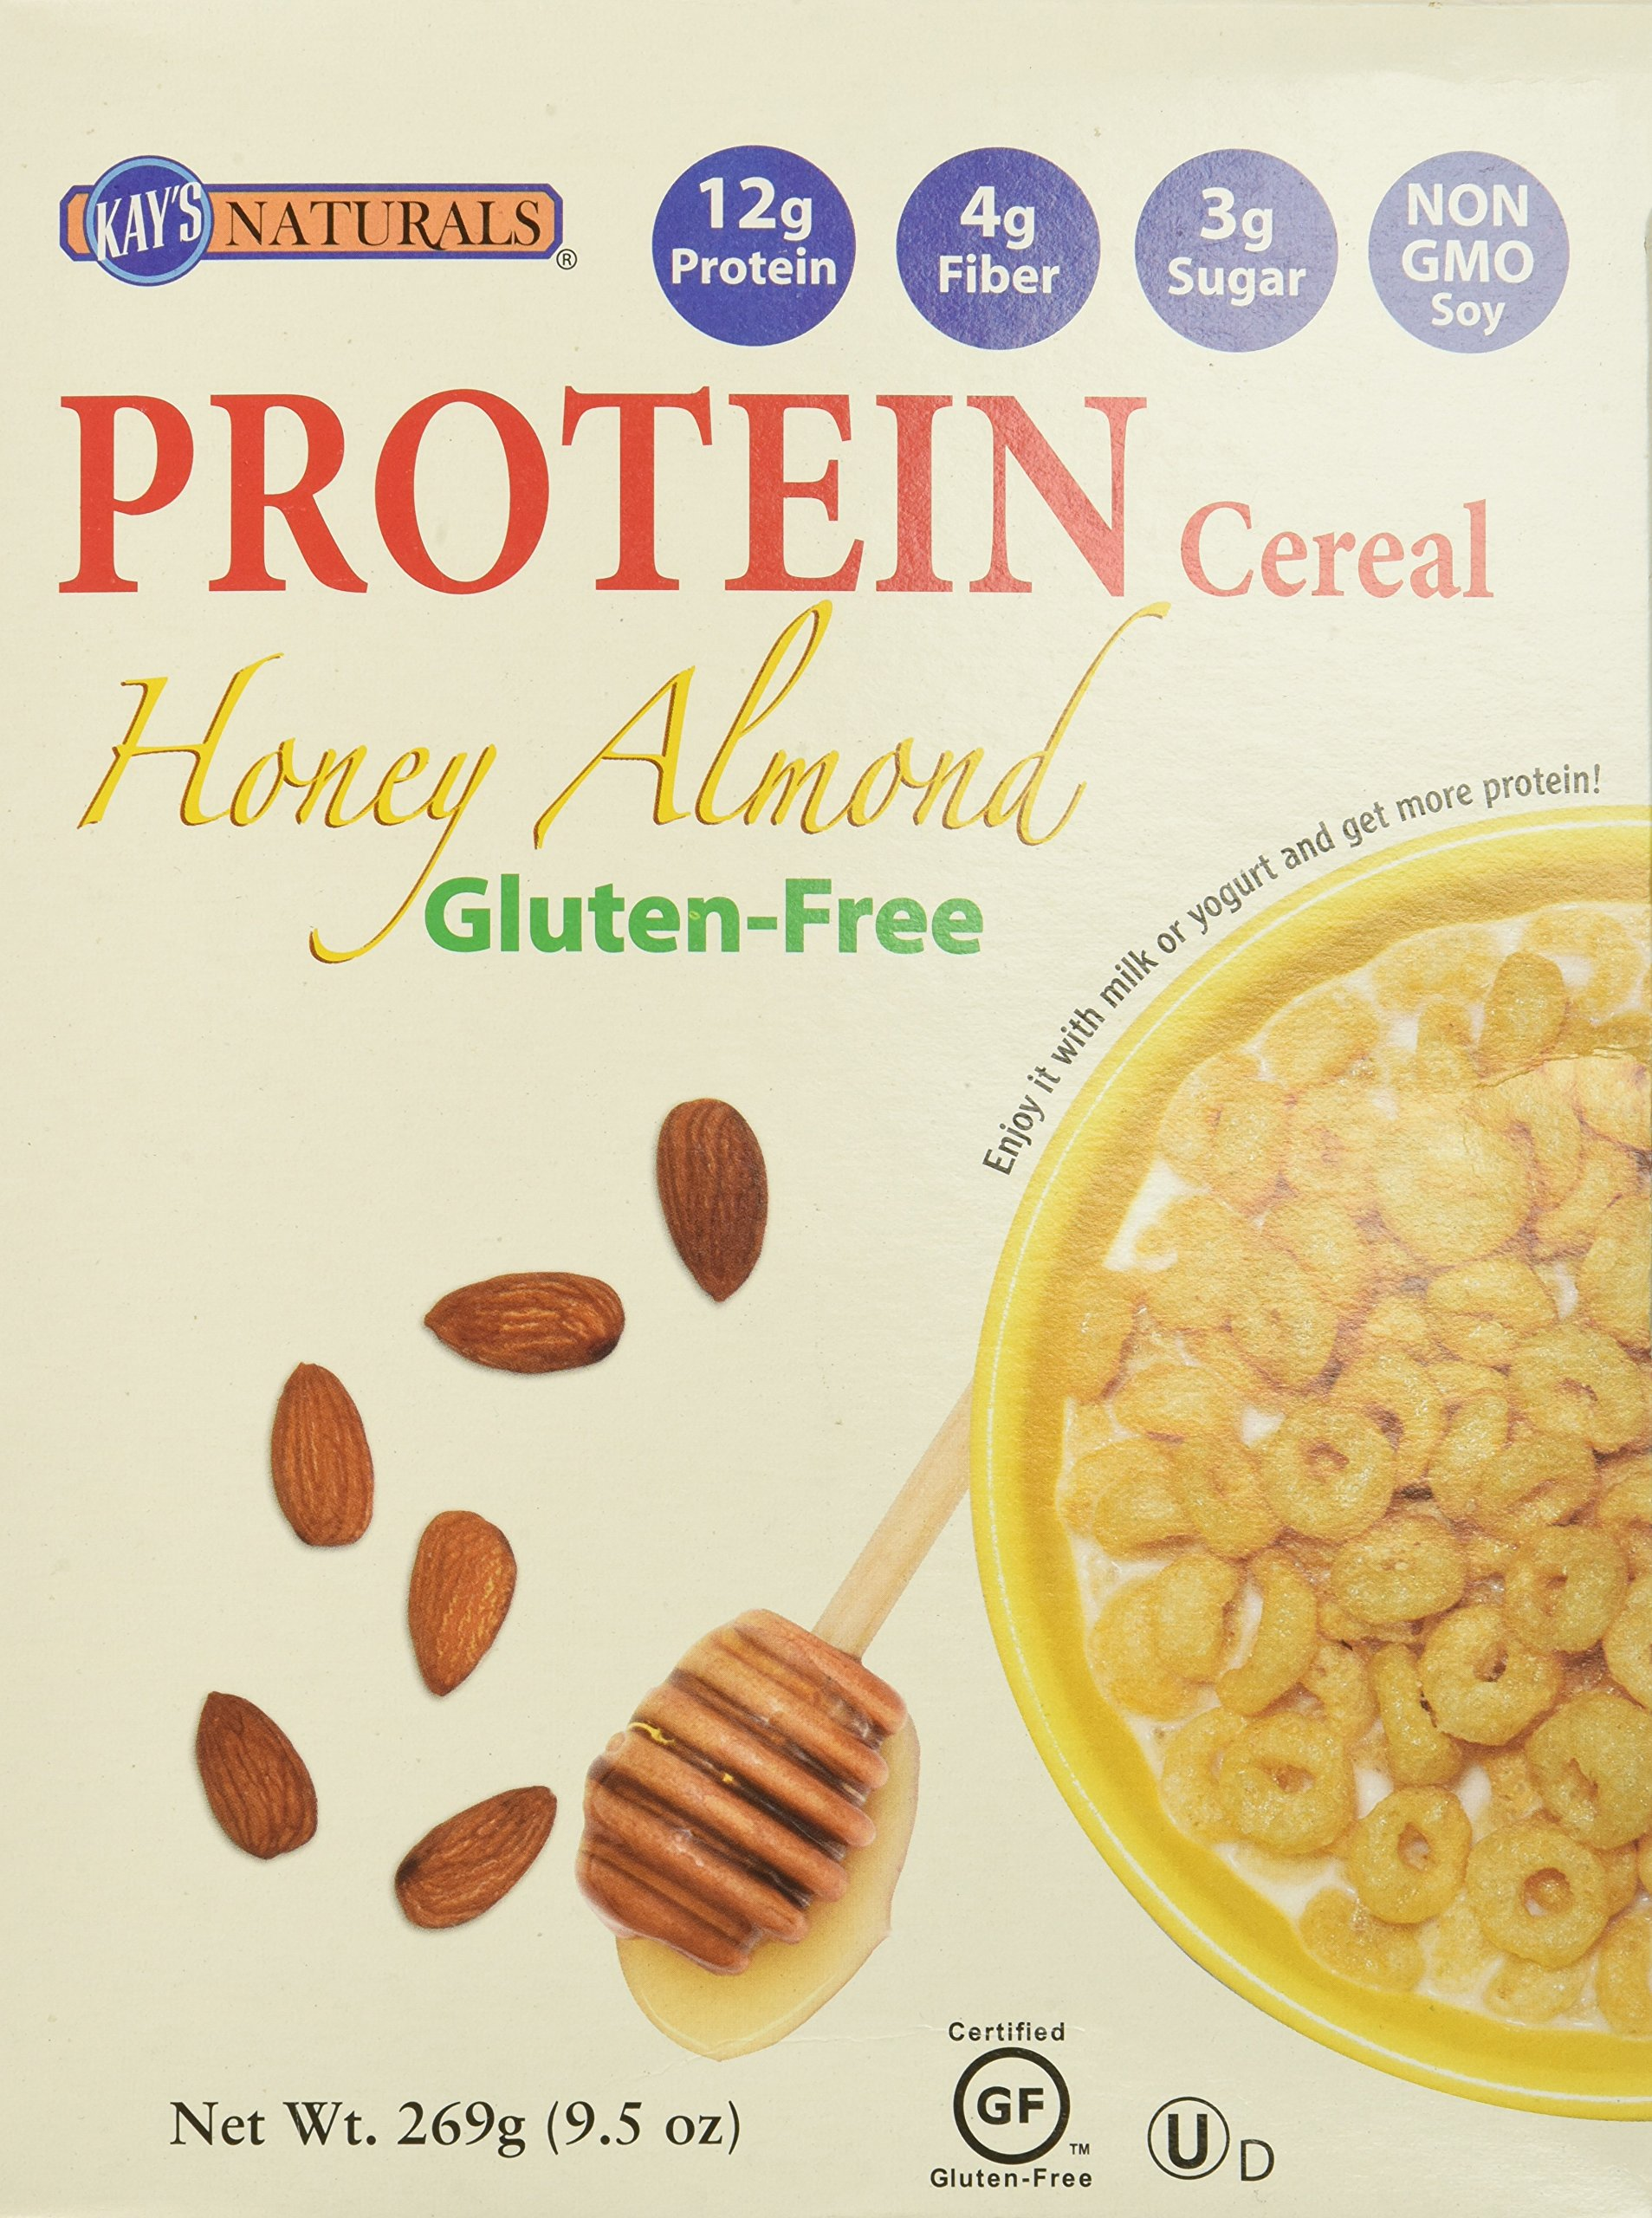 Kay's Natural Gluten Free Protein Honey Almond Cereal, 9.5 oz